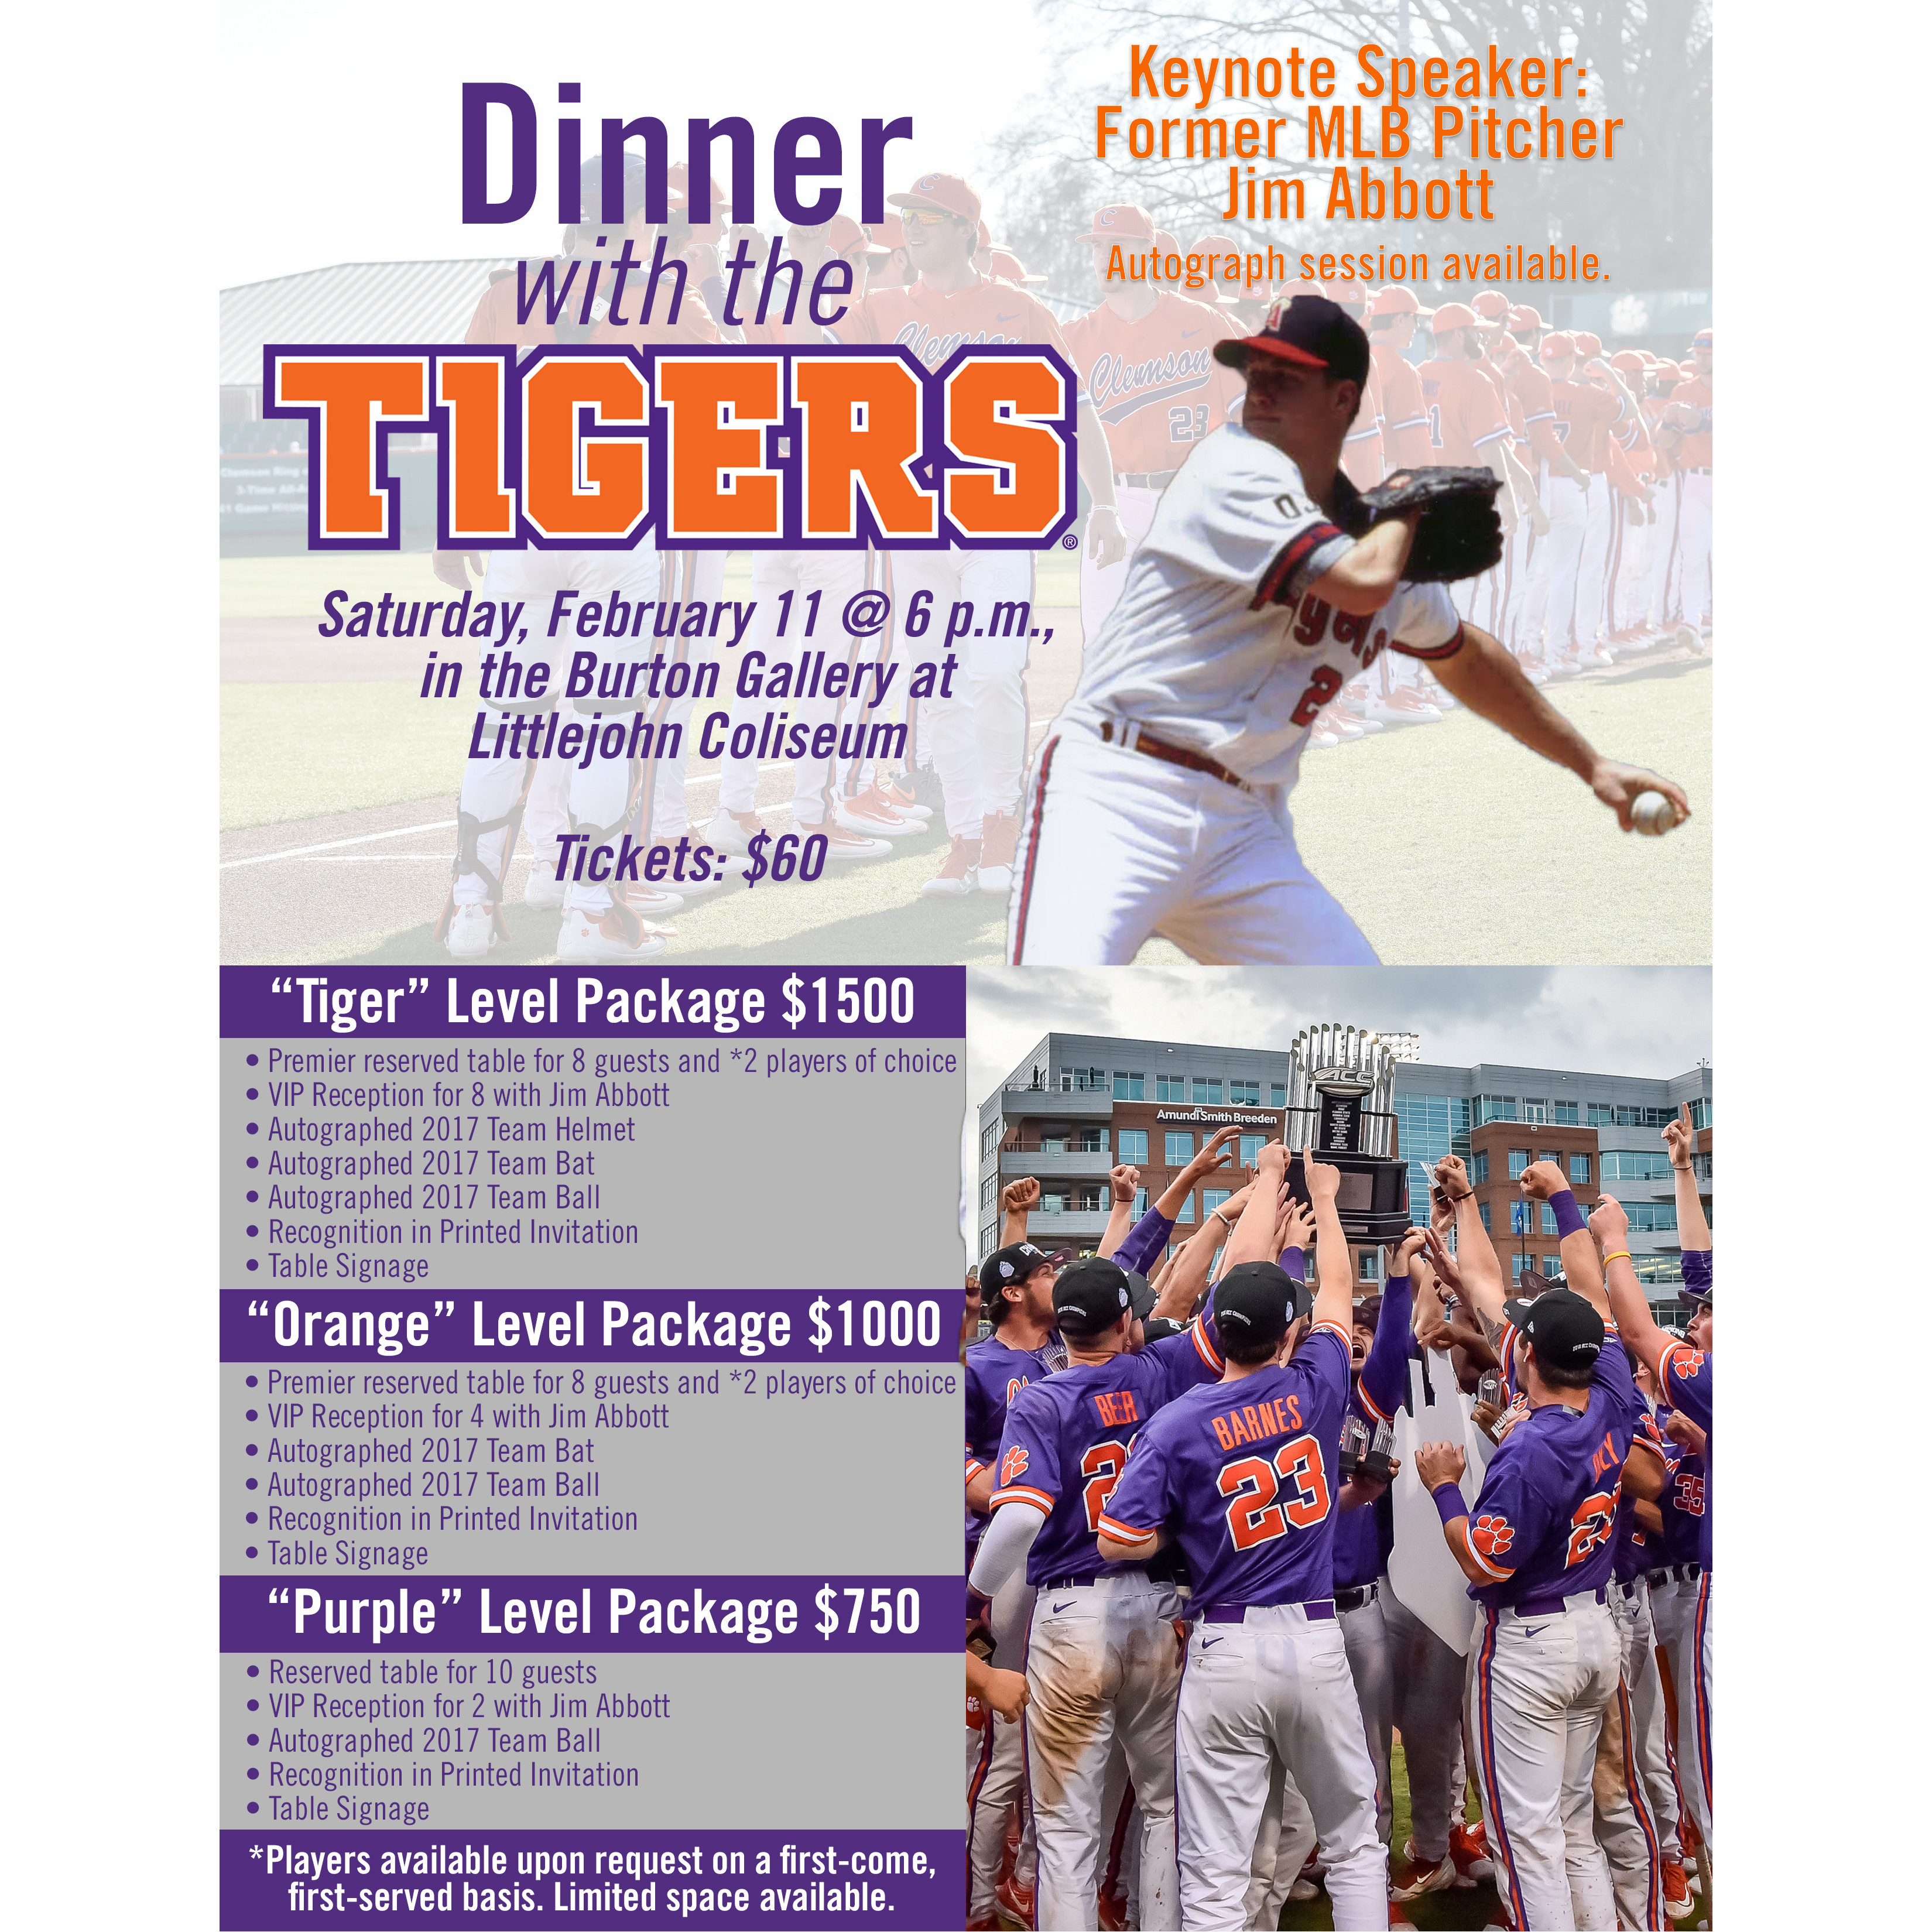 Dinner With the Tigers